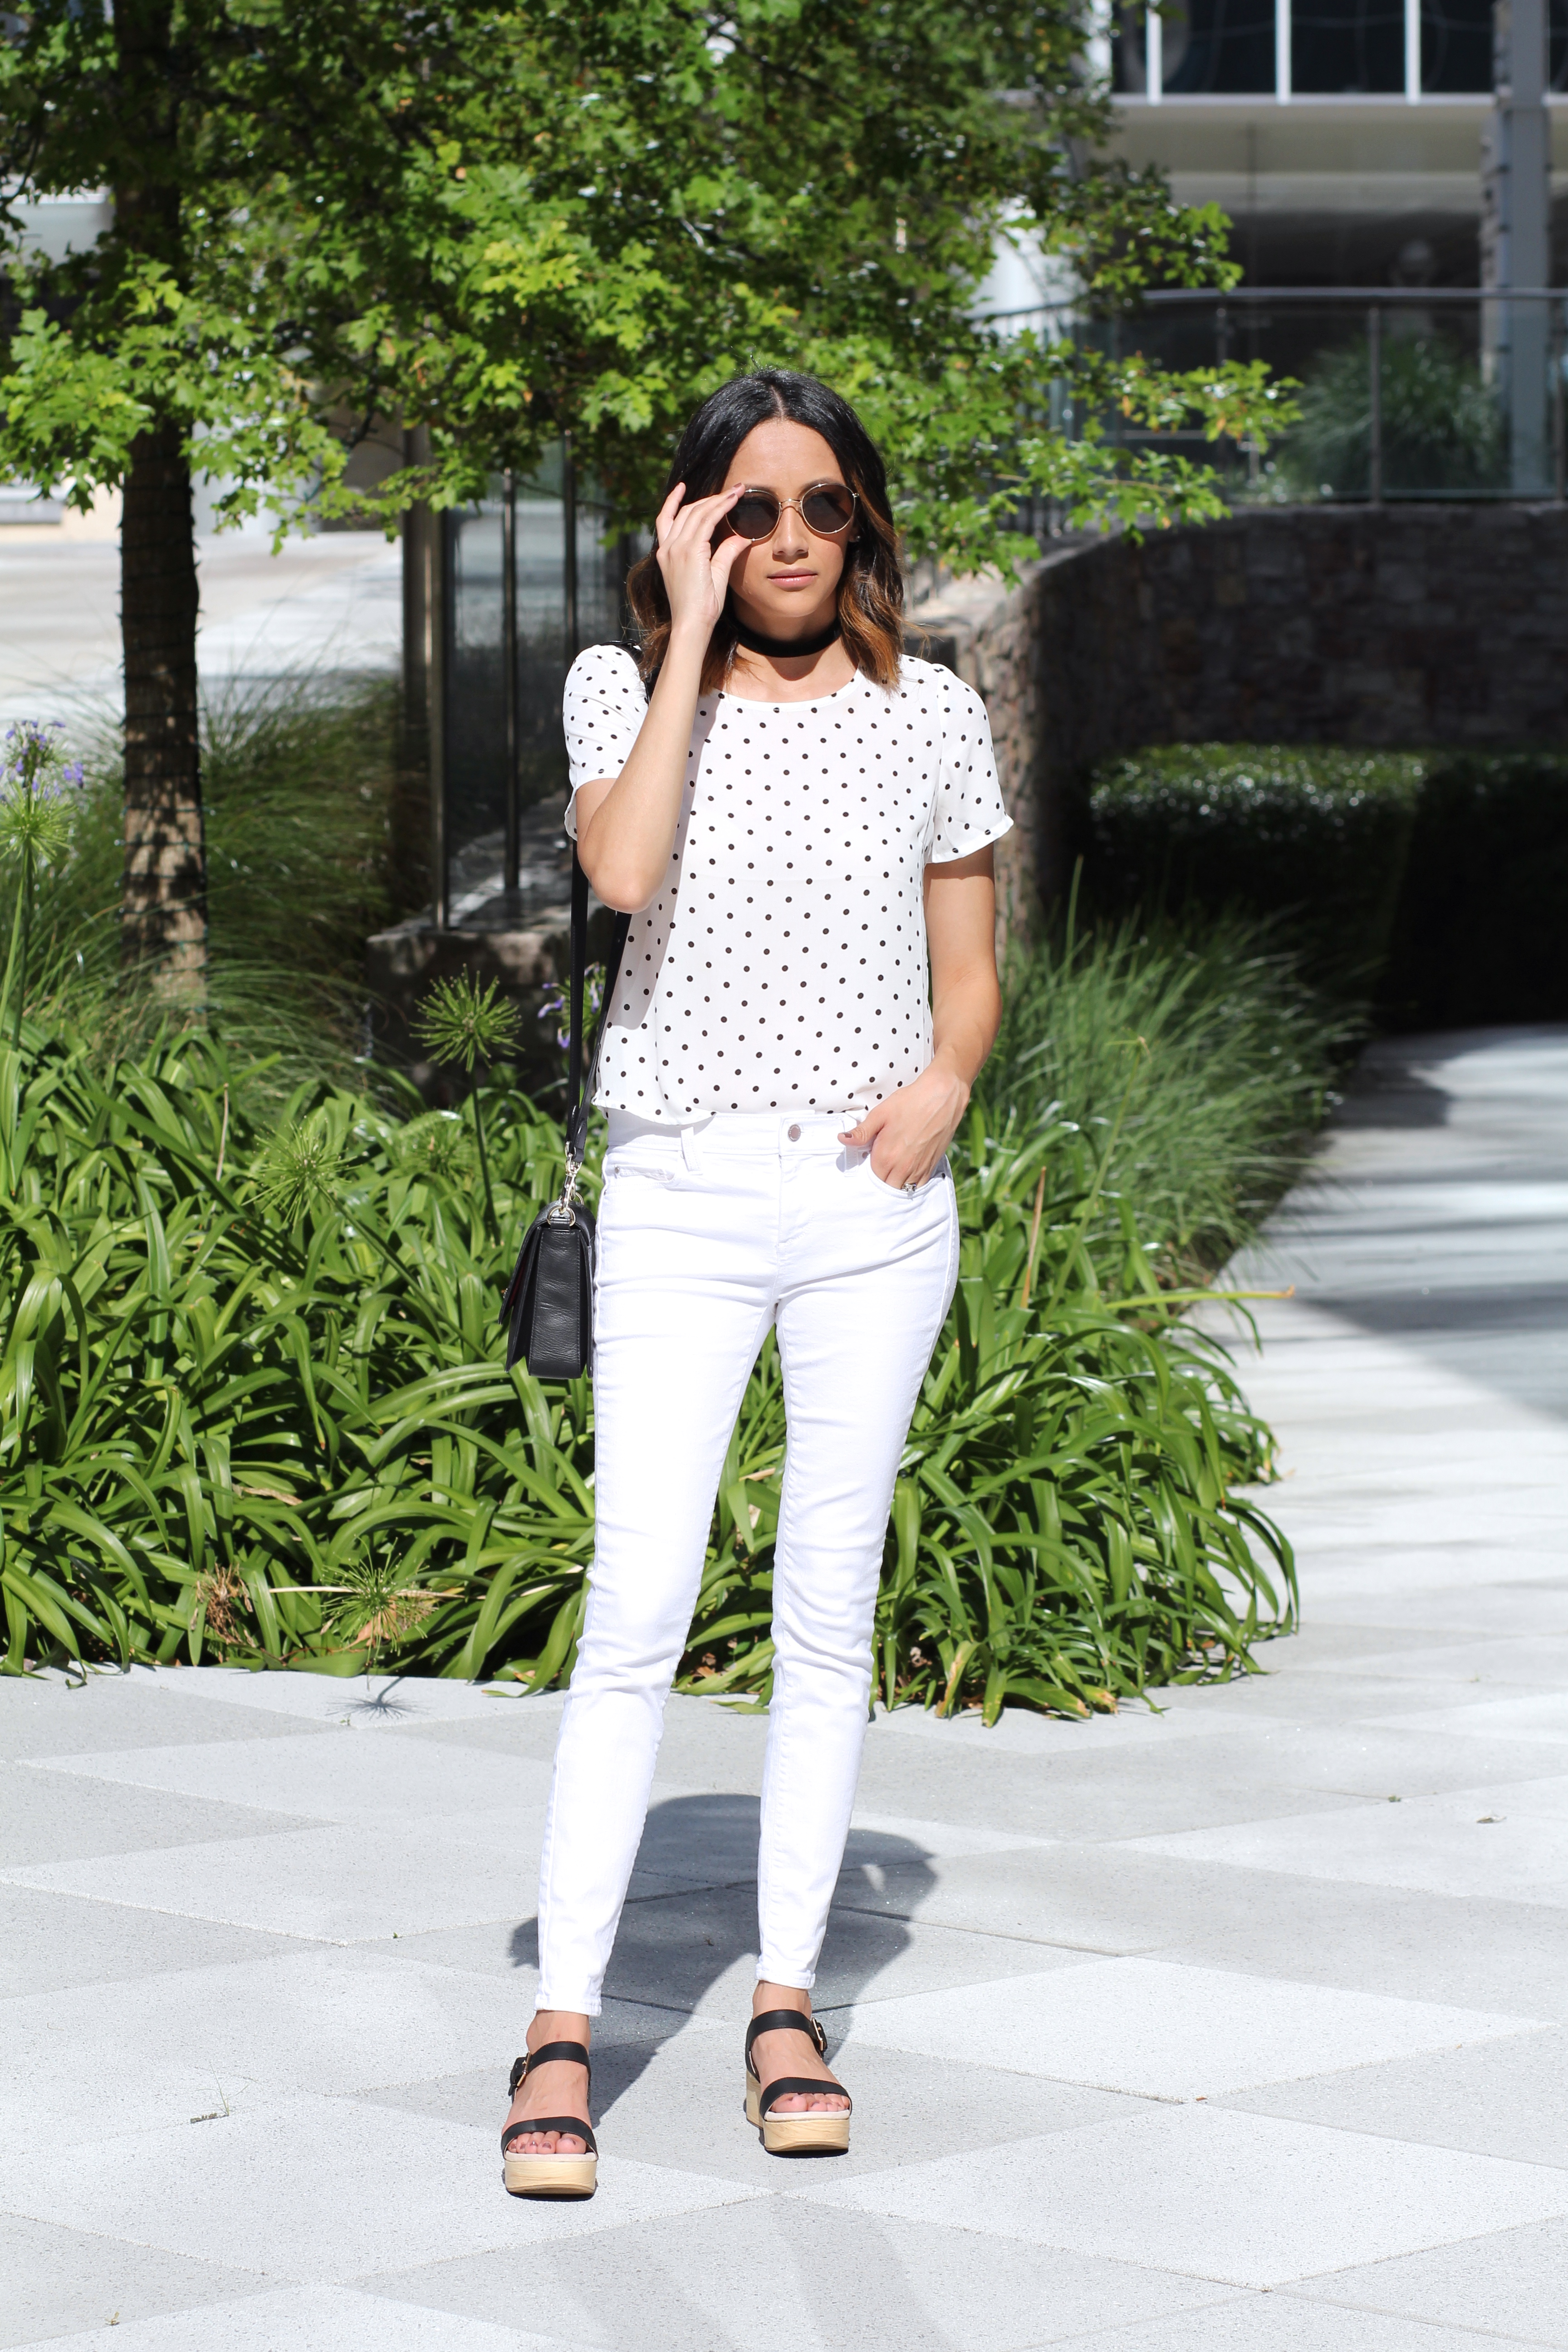 White on White Look | Platform Sandals | Summer Whites | White Denim | Minimal Chic